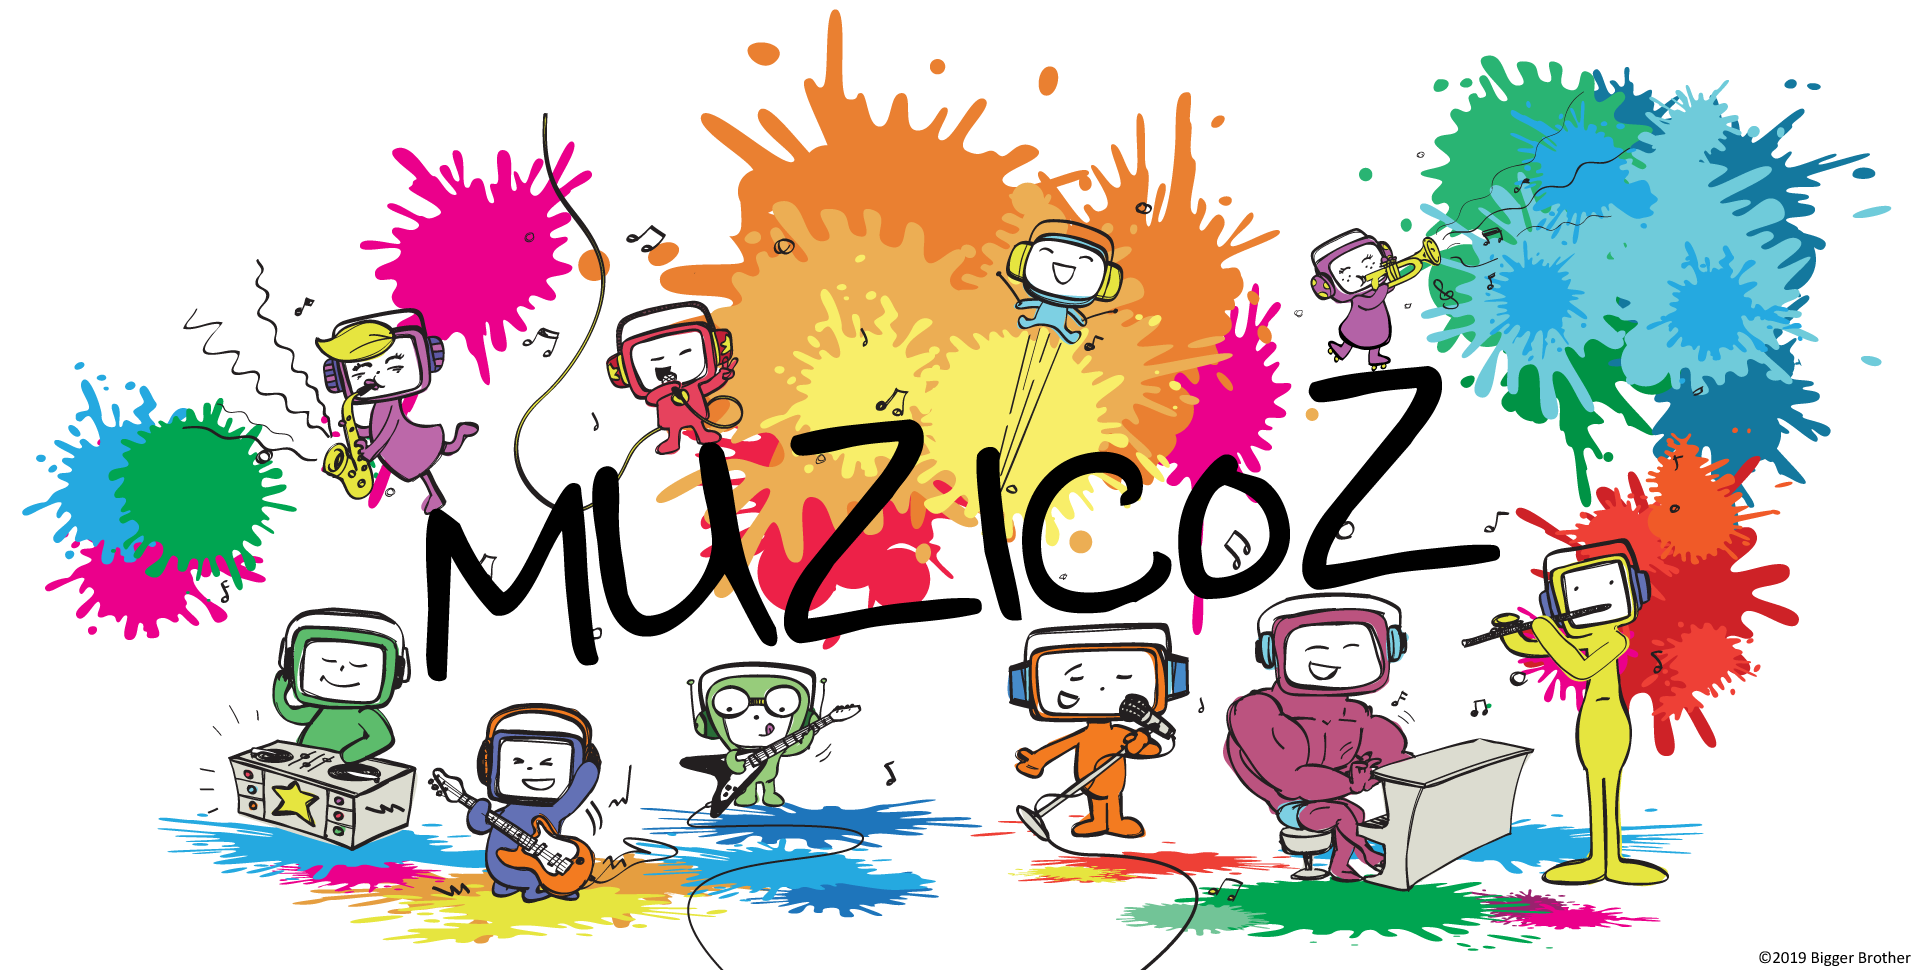 Muzicoz-Home-Page-cover-2019-1920